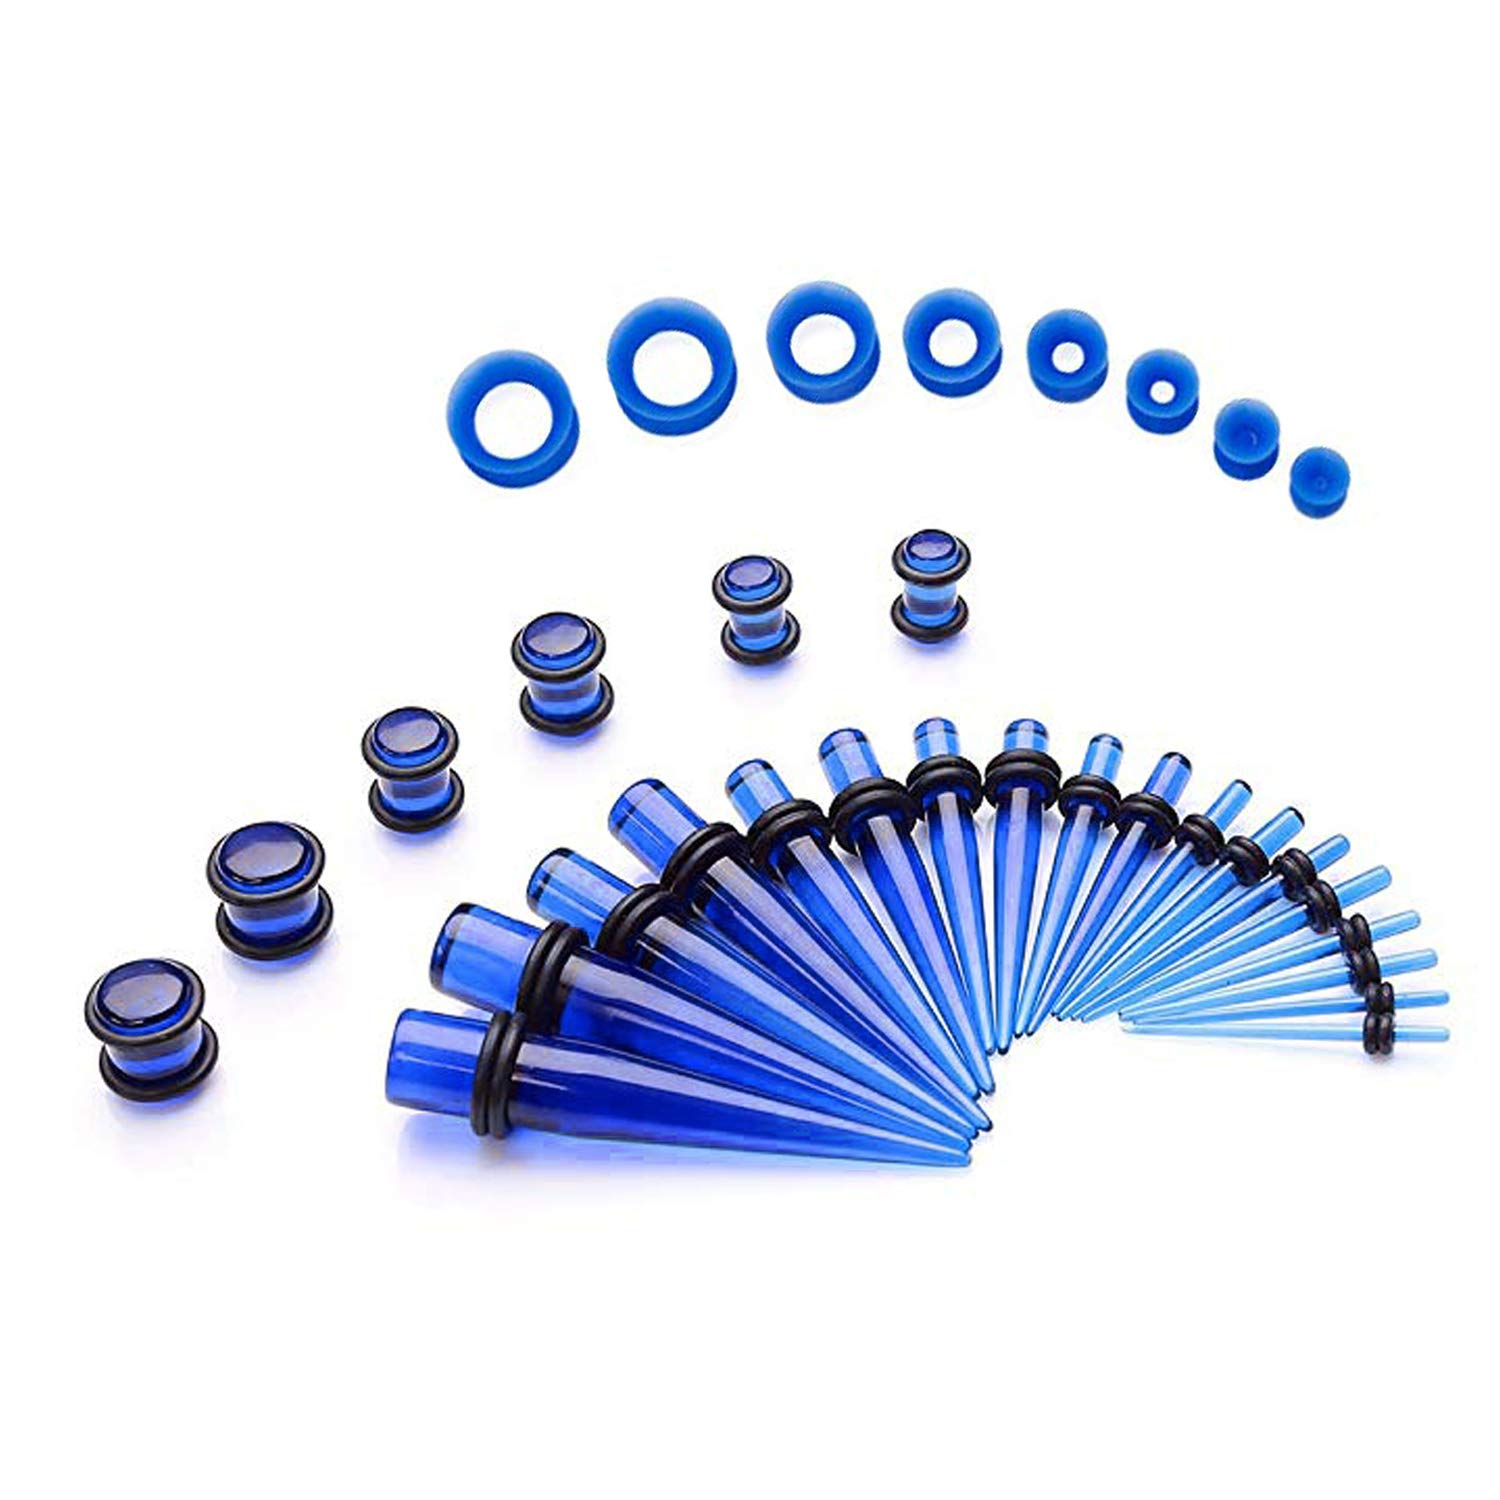 UJStyle 50 Pieces Ear Stretching Kit Acrylic Gauge Kit Spiral Tapers and Plugs Ear Gauges Expander Set